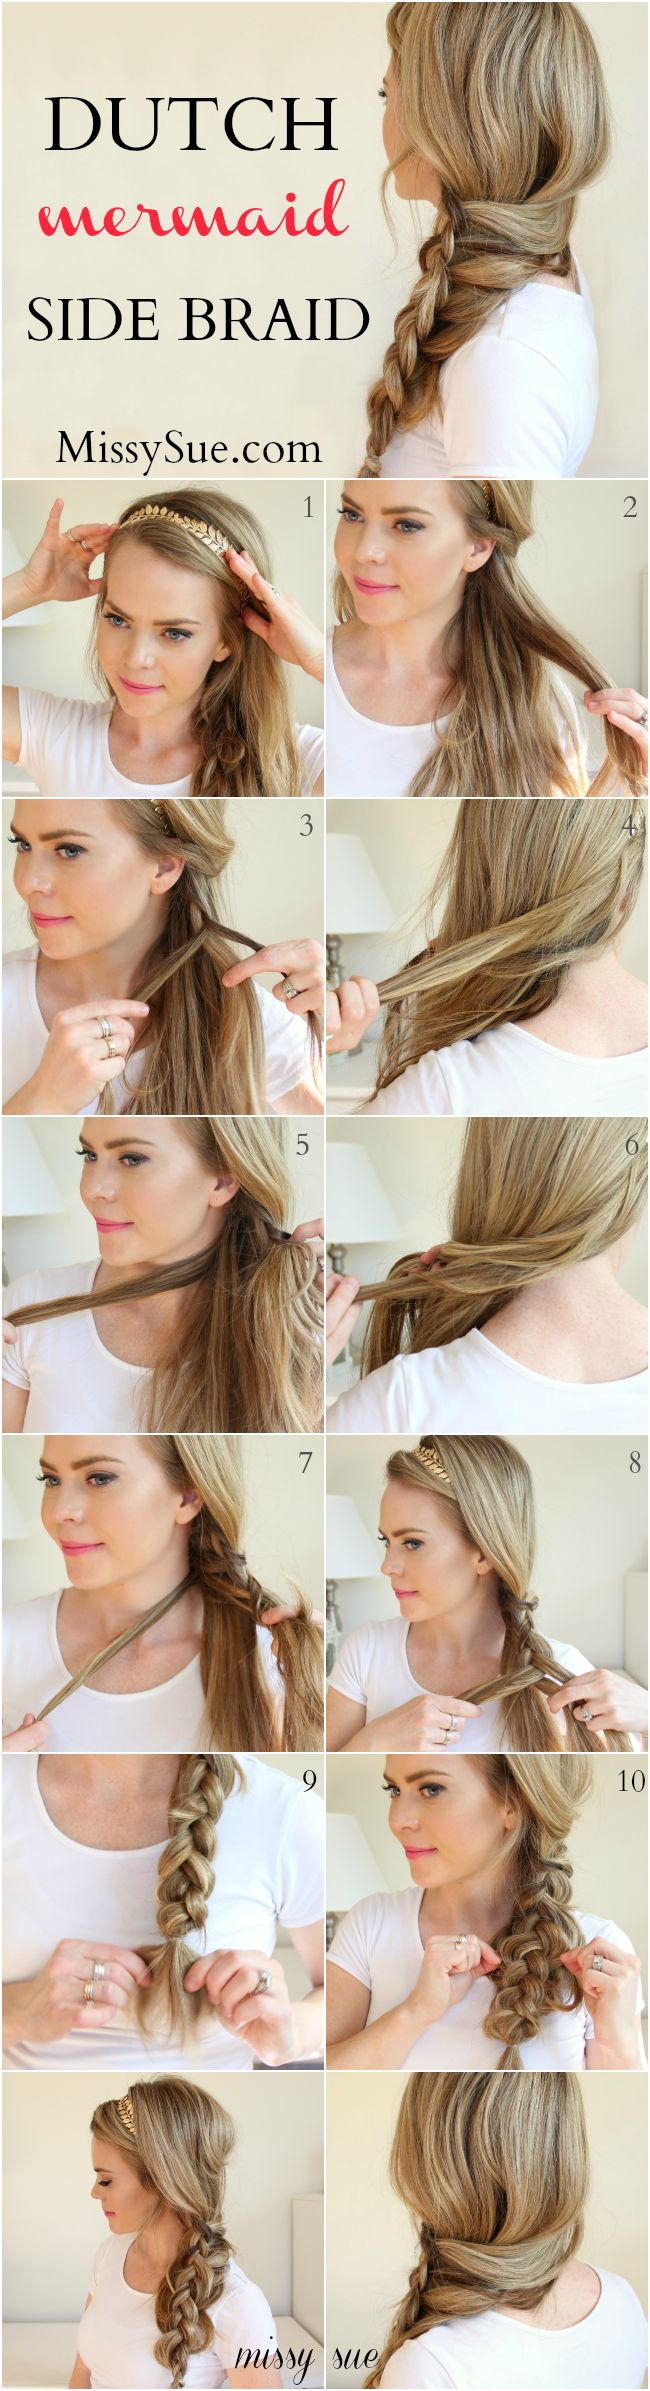 dutch mermaid side braid - missysue blog  i don't like it quite so messy, but it's cute before she stretches it out so much